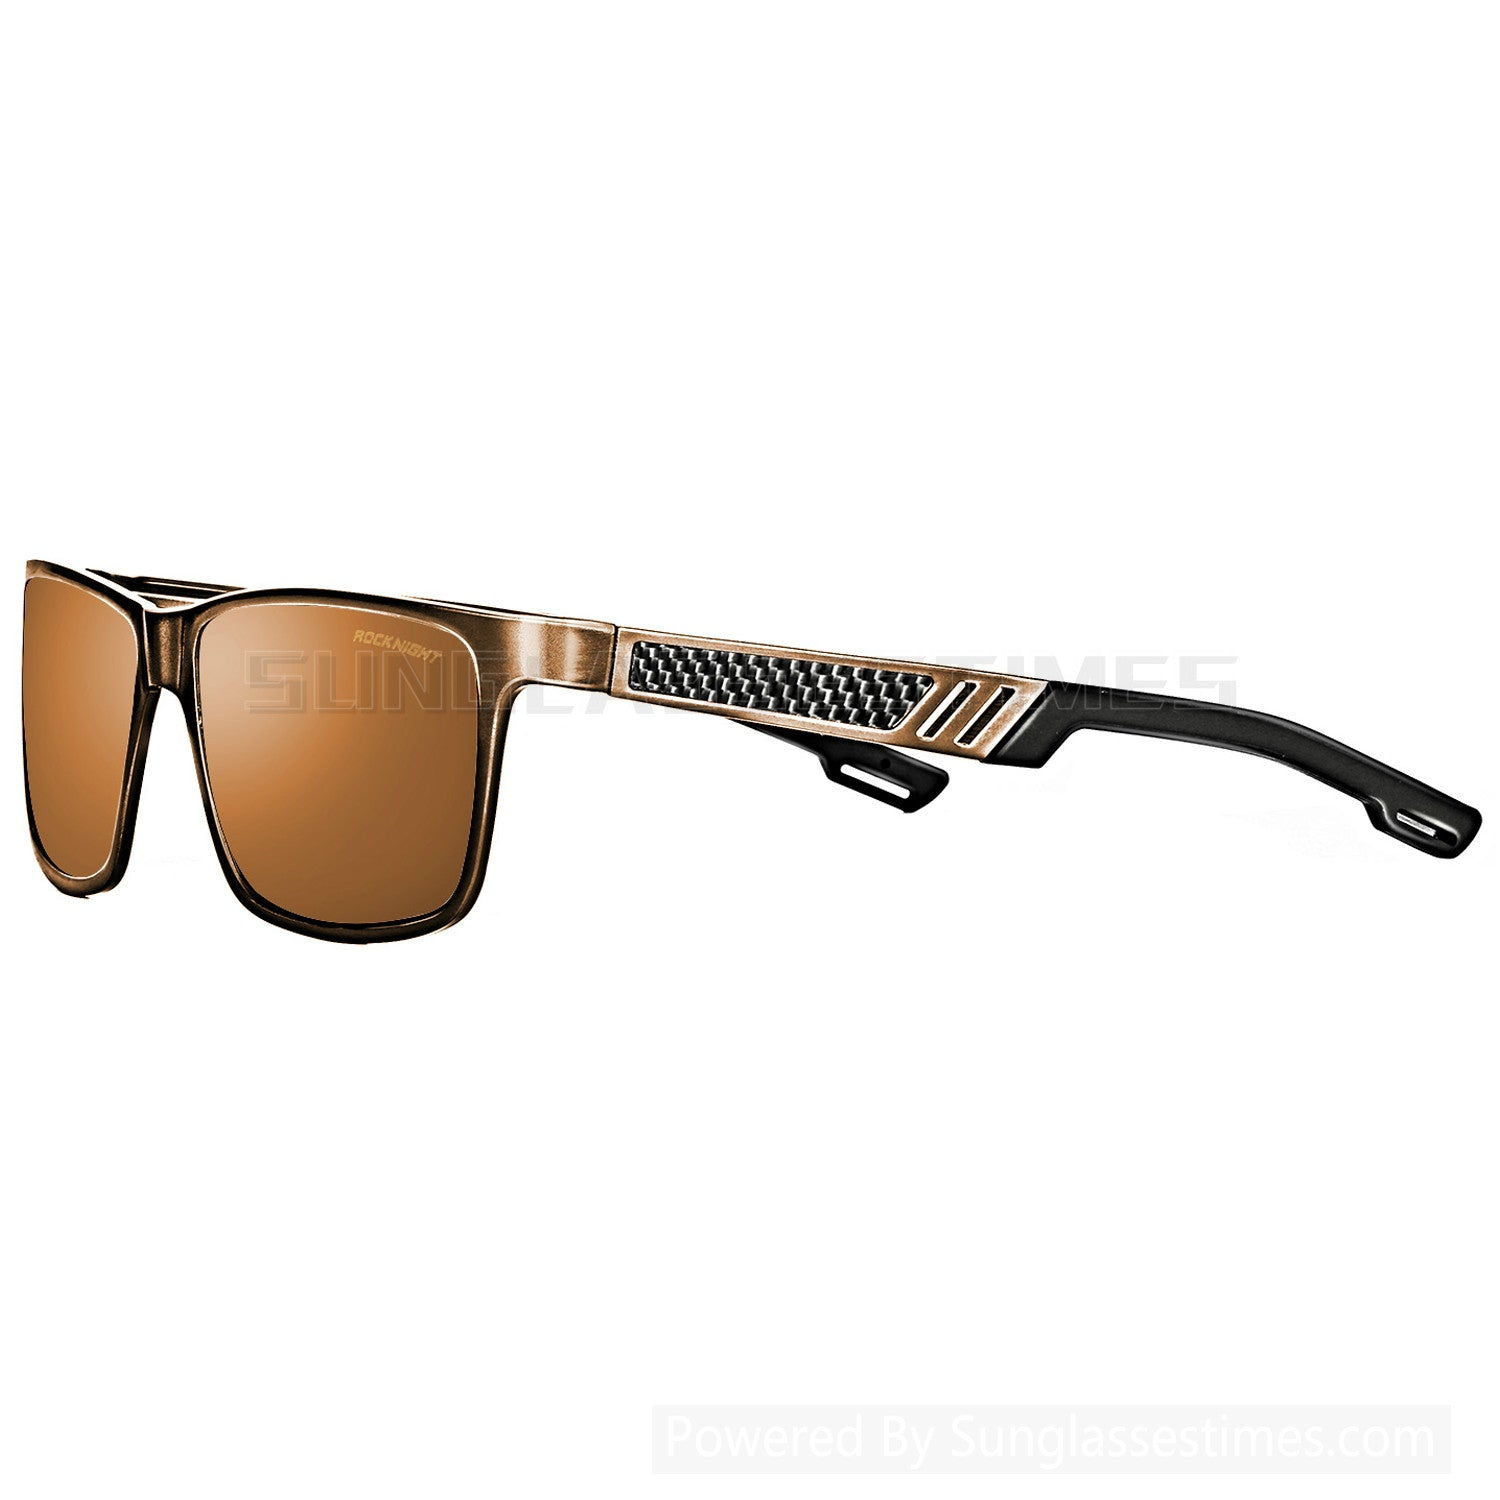 Polarized Sunglasses 6560